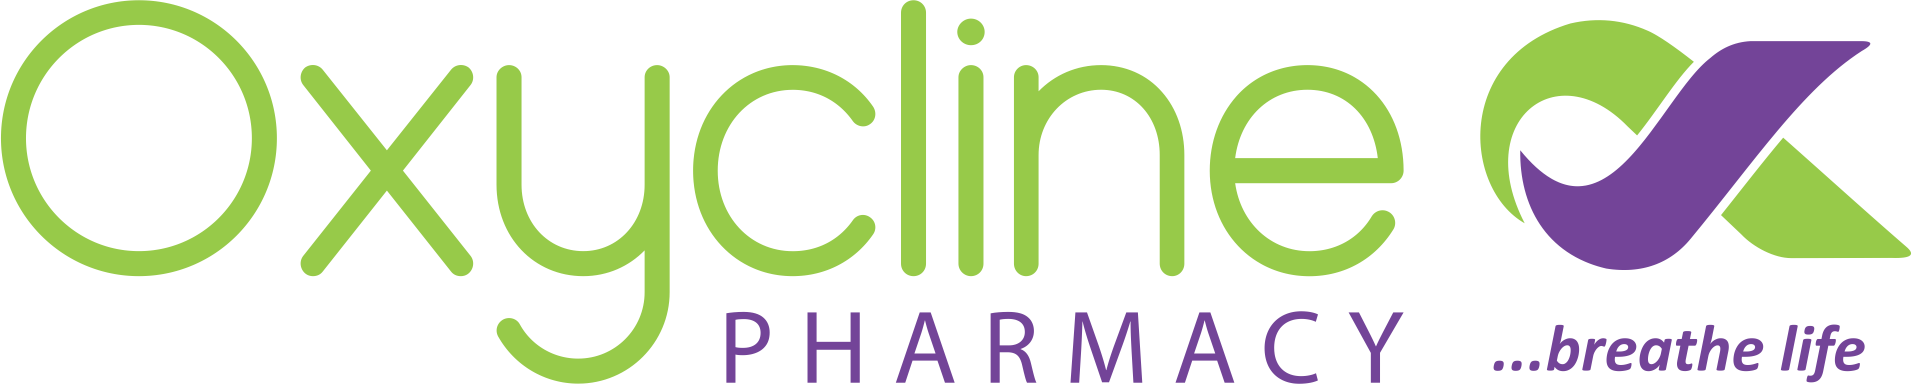 Oxycline Pharmacy